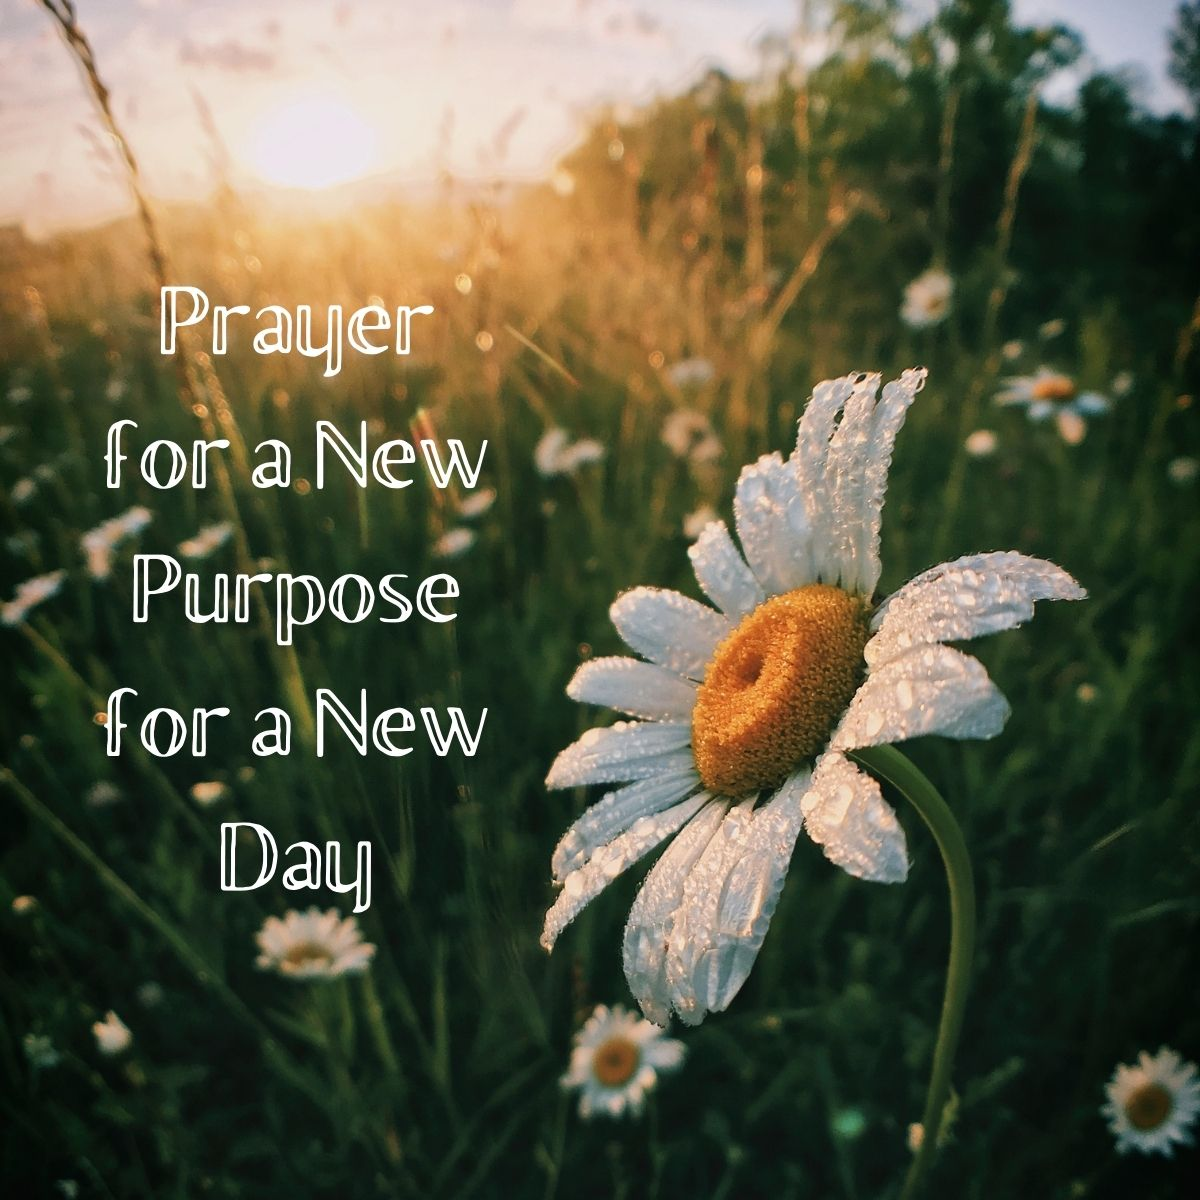 flower meadow title image for prayer for new purpose new day